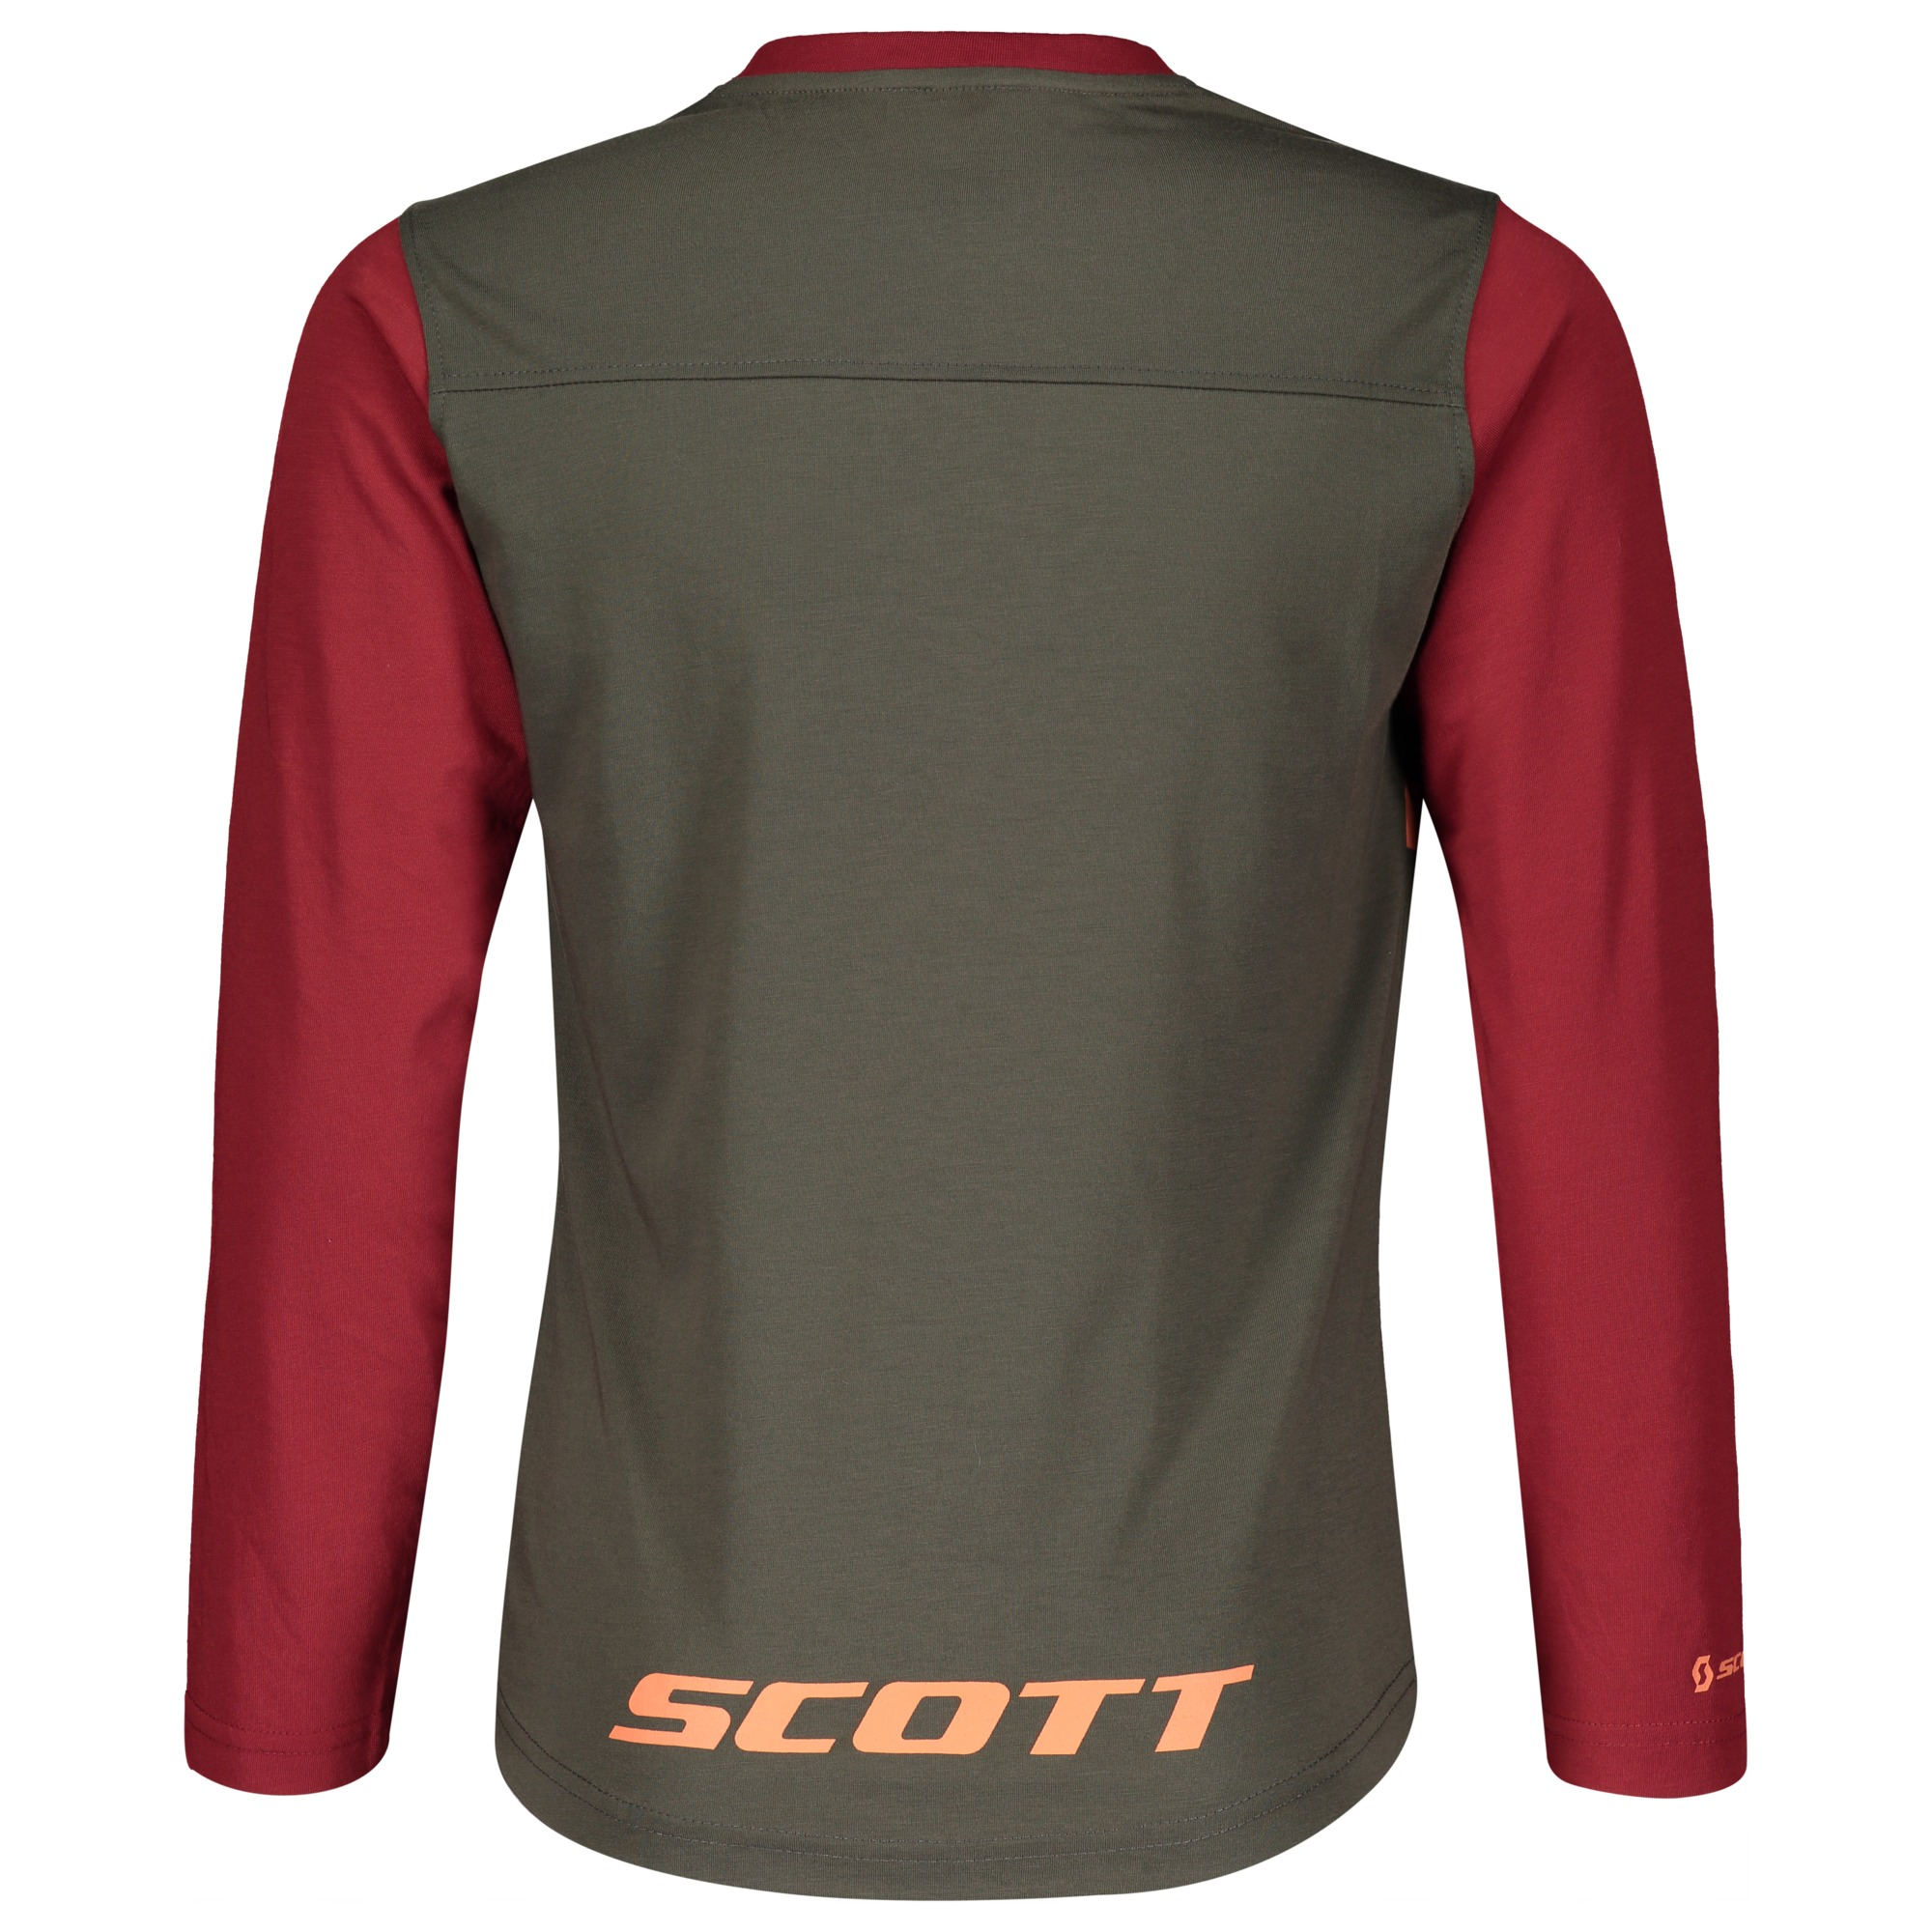 SCOTT Trail Dri Langarm-Shirt für Kinder